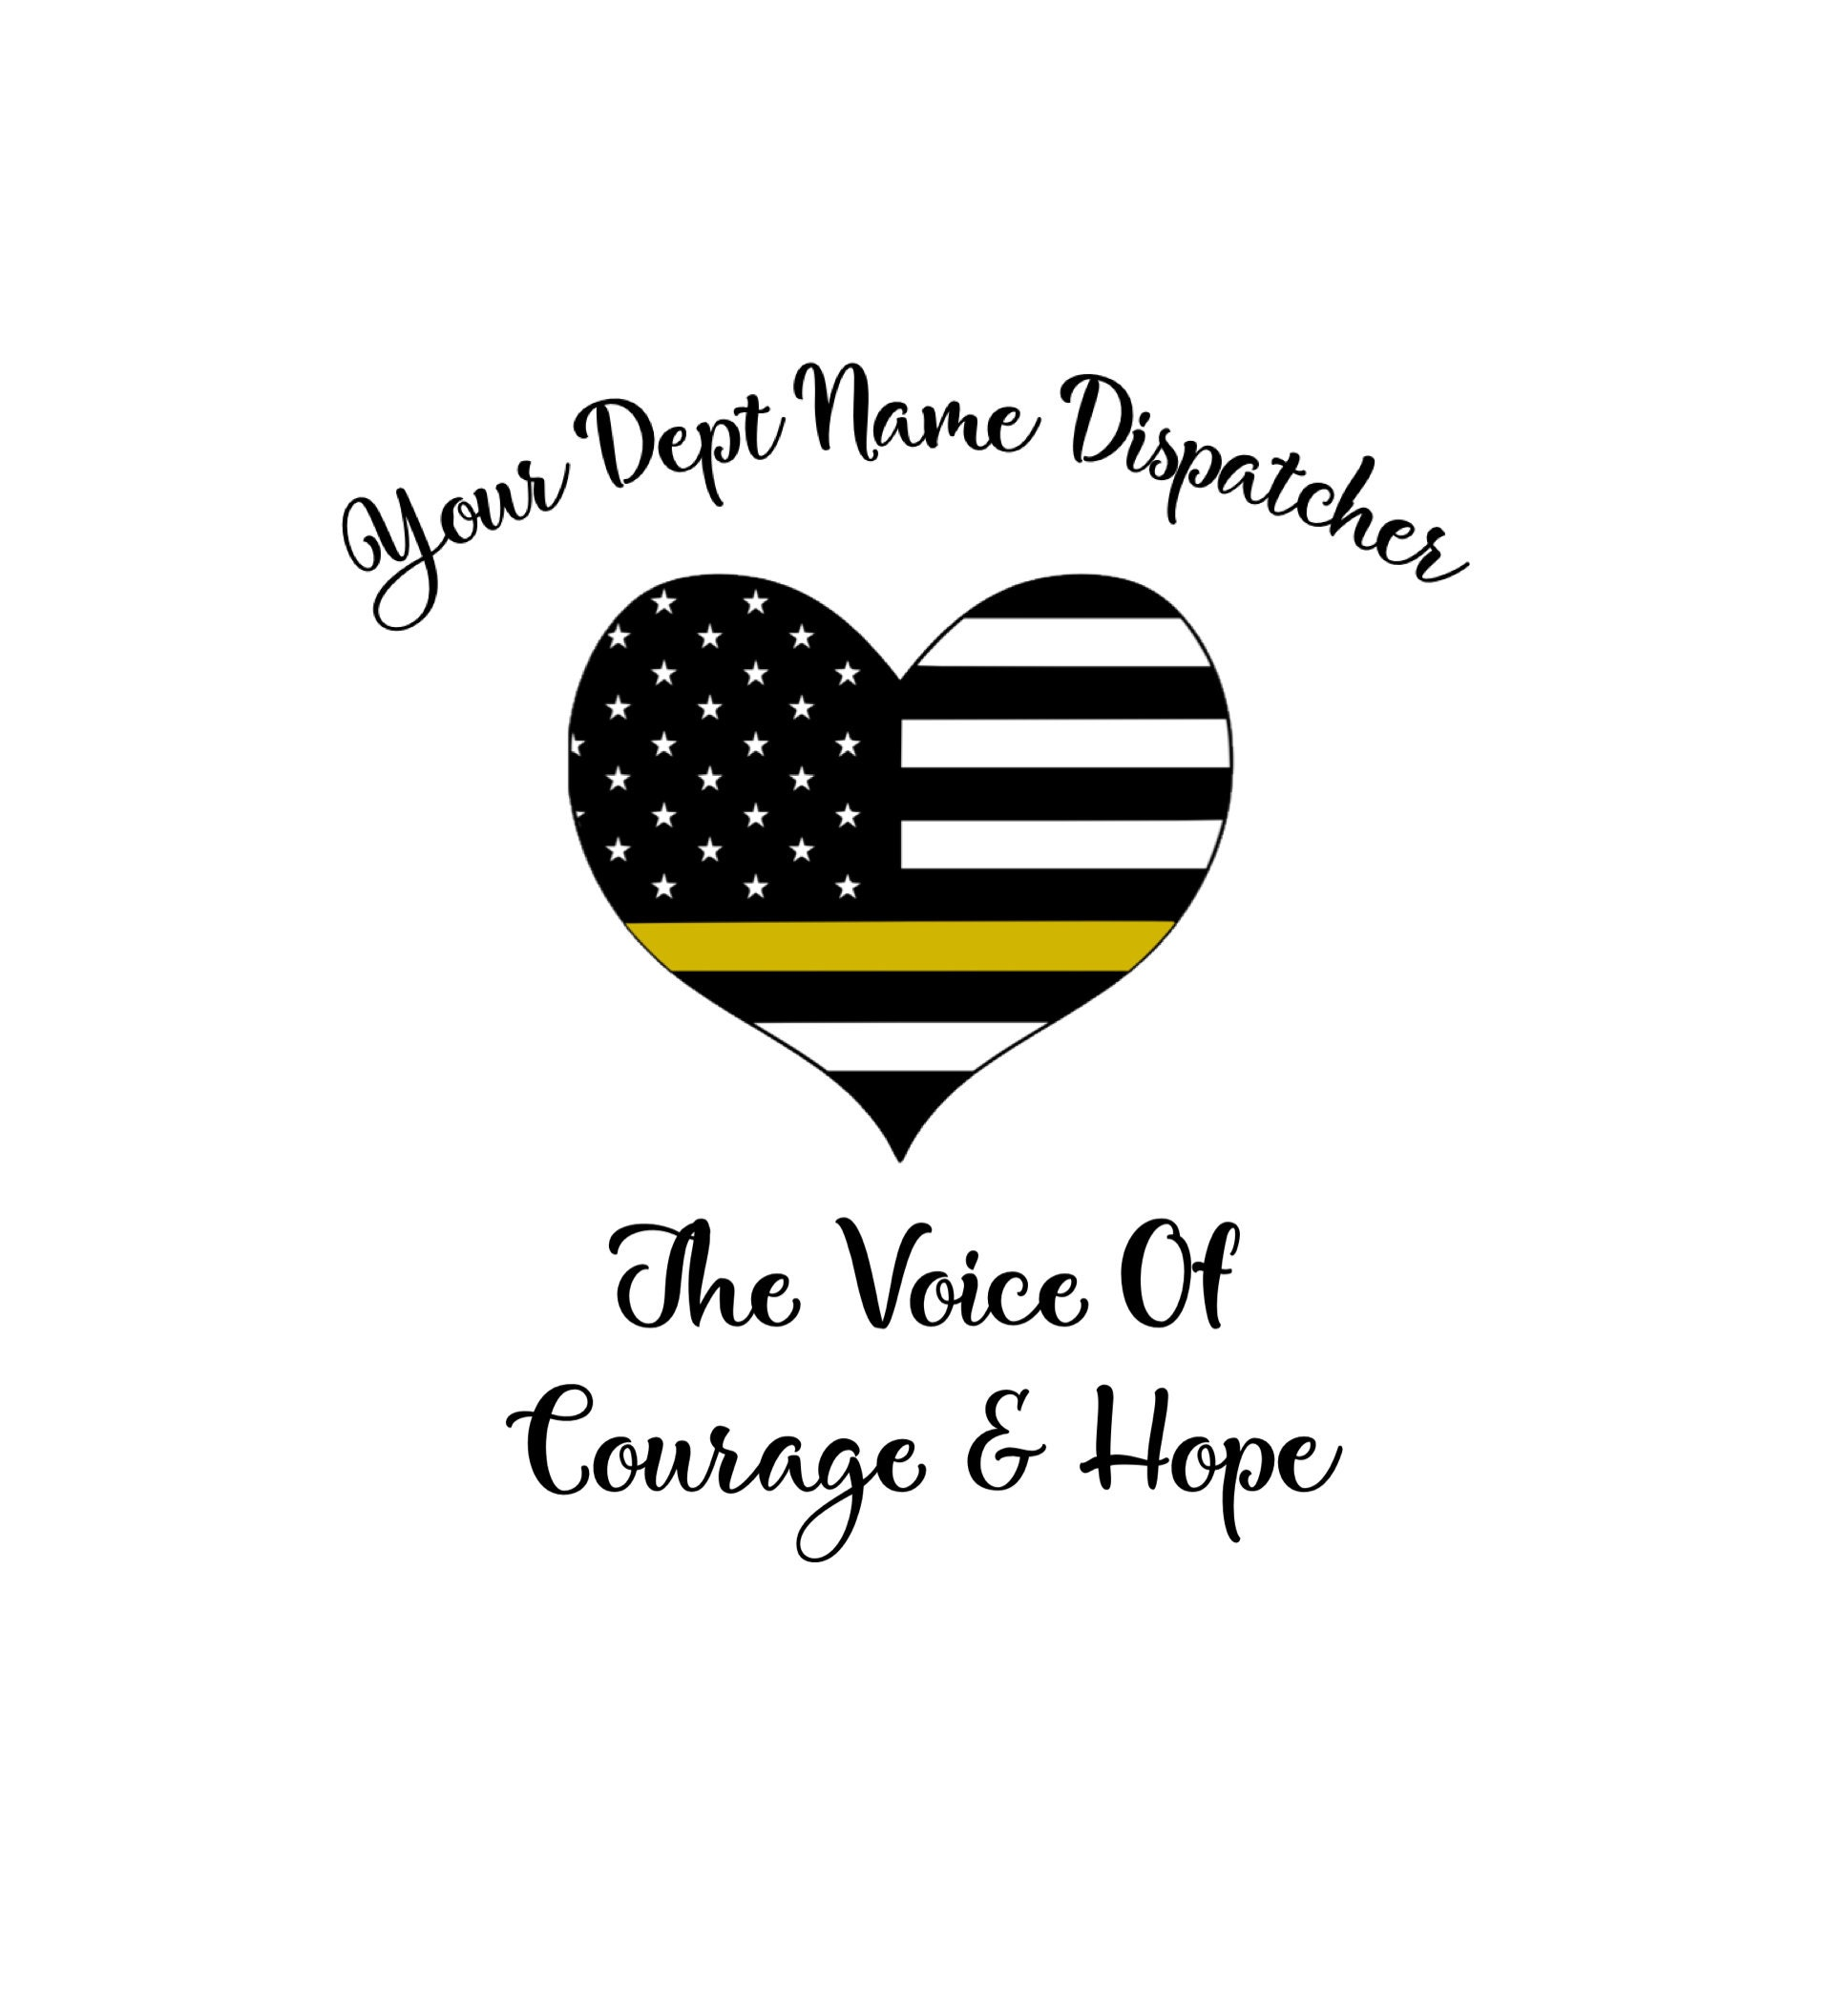 519810888f8 Customized Dispatcher Decal The Voice Of Courage and Hope | Etsy